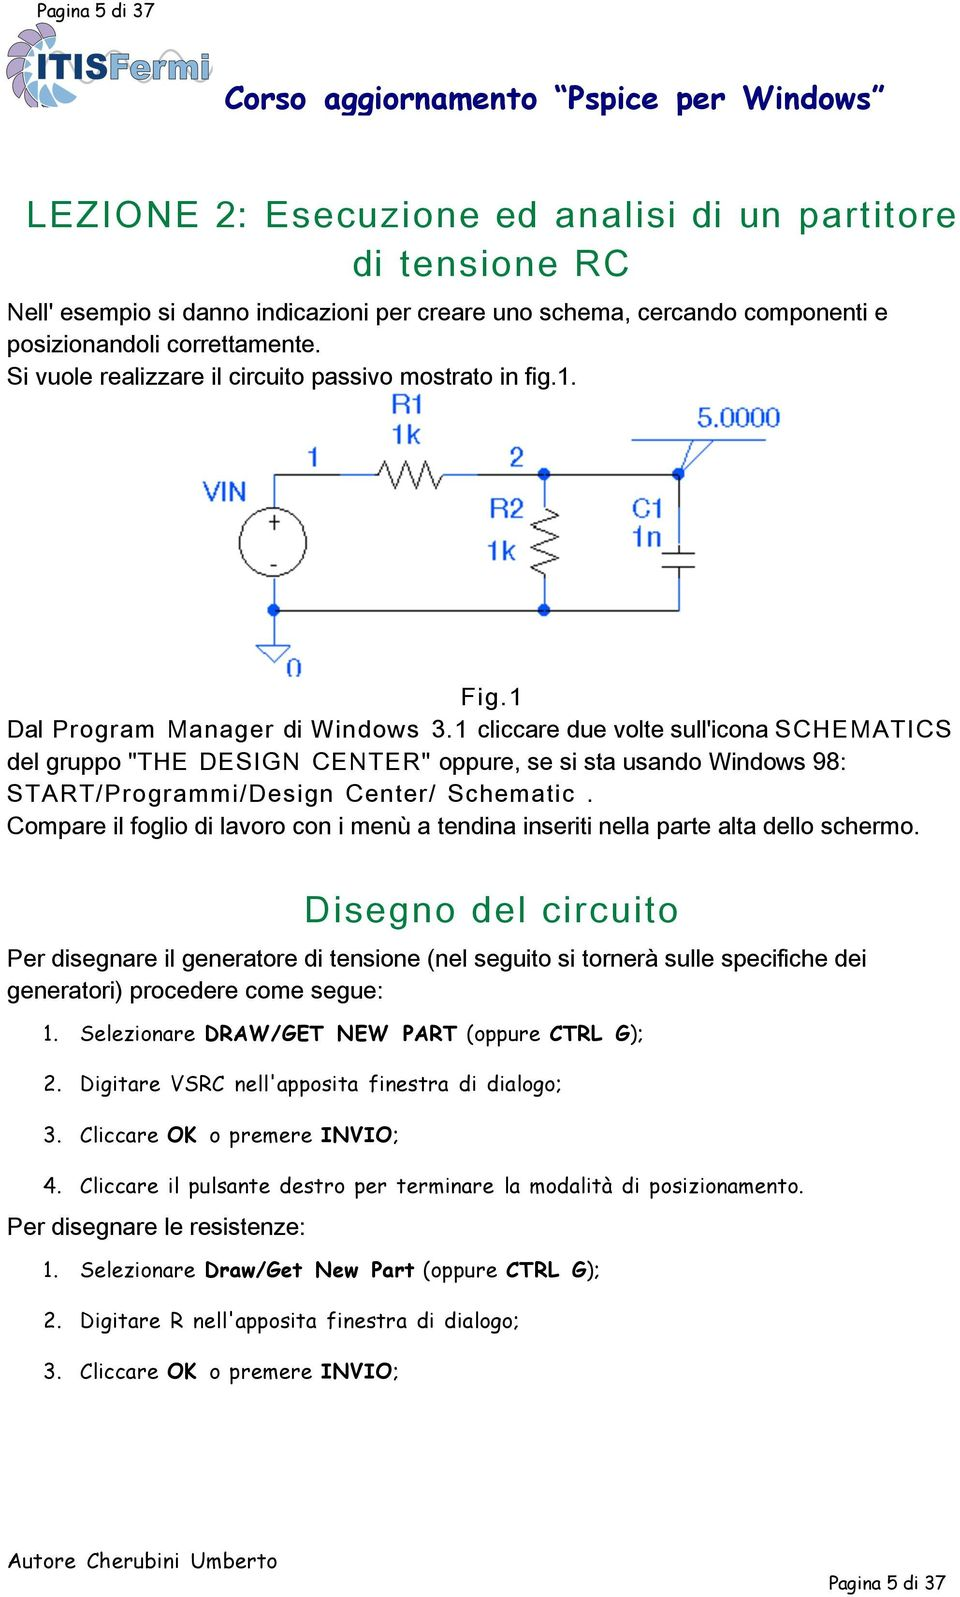 "1 cliccare due volte sull'icona SCHEMATICS del gruppo ""THE DESIGN CENTER"" oppure, se si sta usando Windows 98: START/Programmi/Design Center/ Schematic."